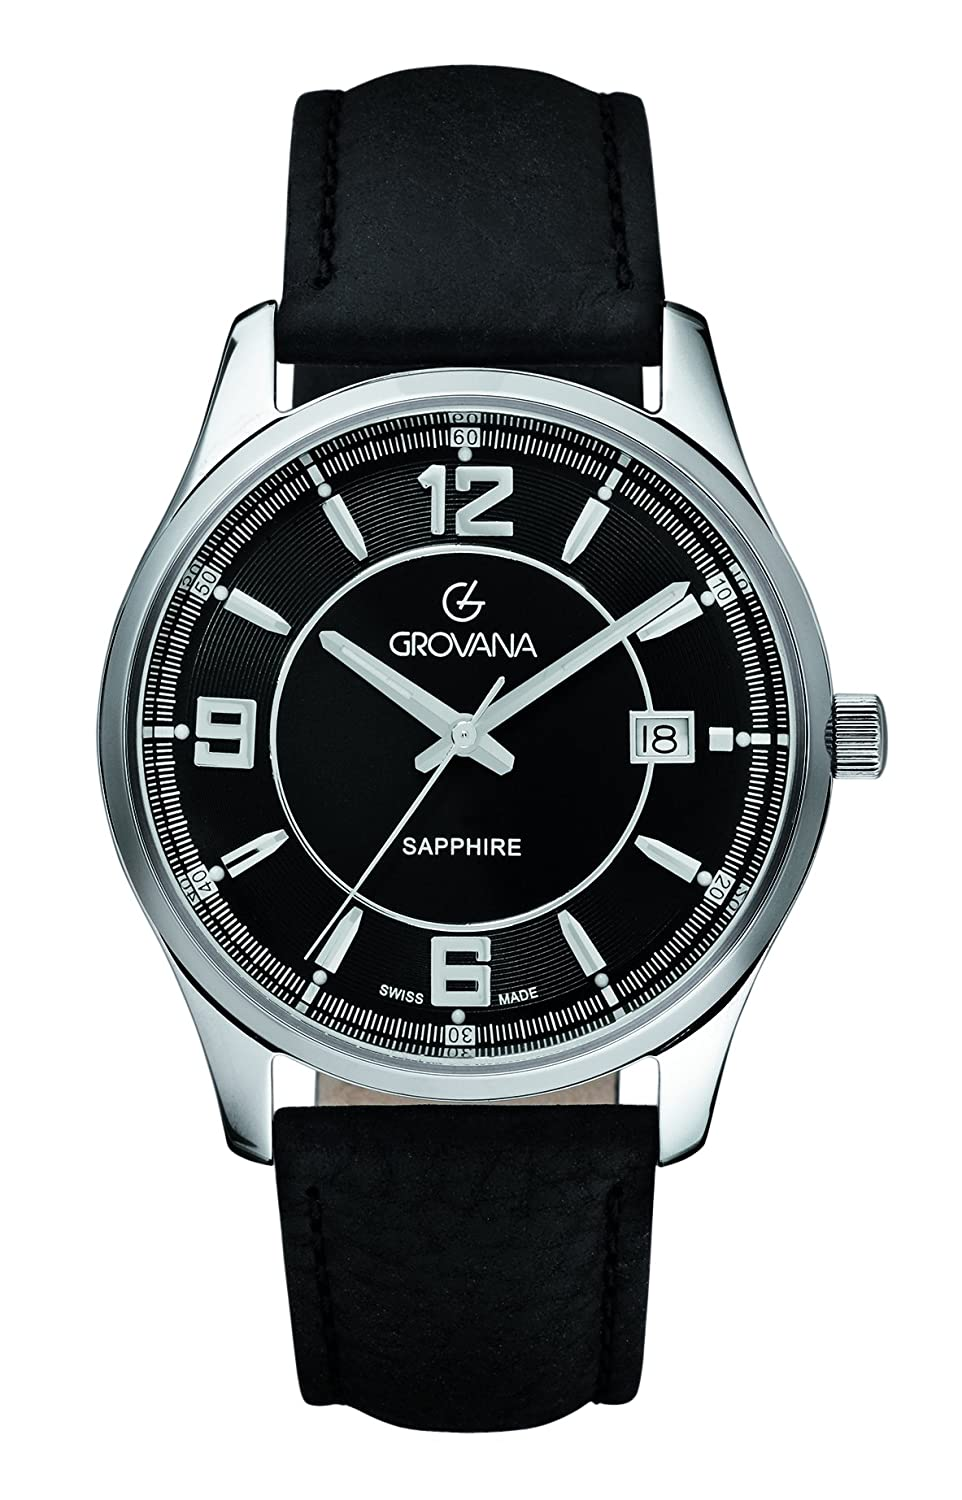 GROVANA 1215.1537 men'Armbanduhr PH4900-C-PH01T Analog Leder schwarz 1215.1537